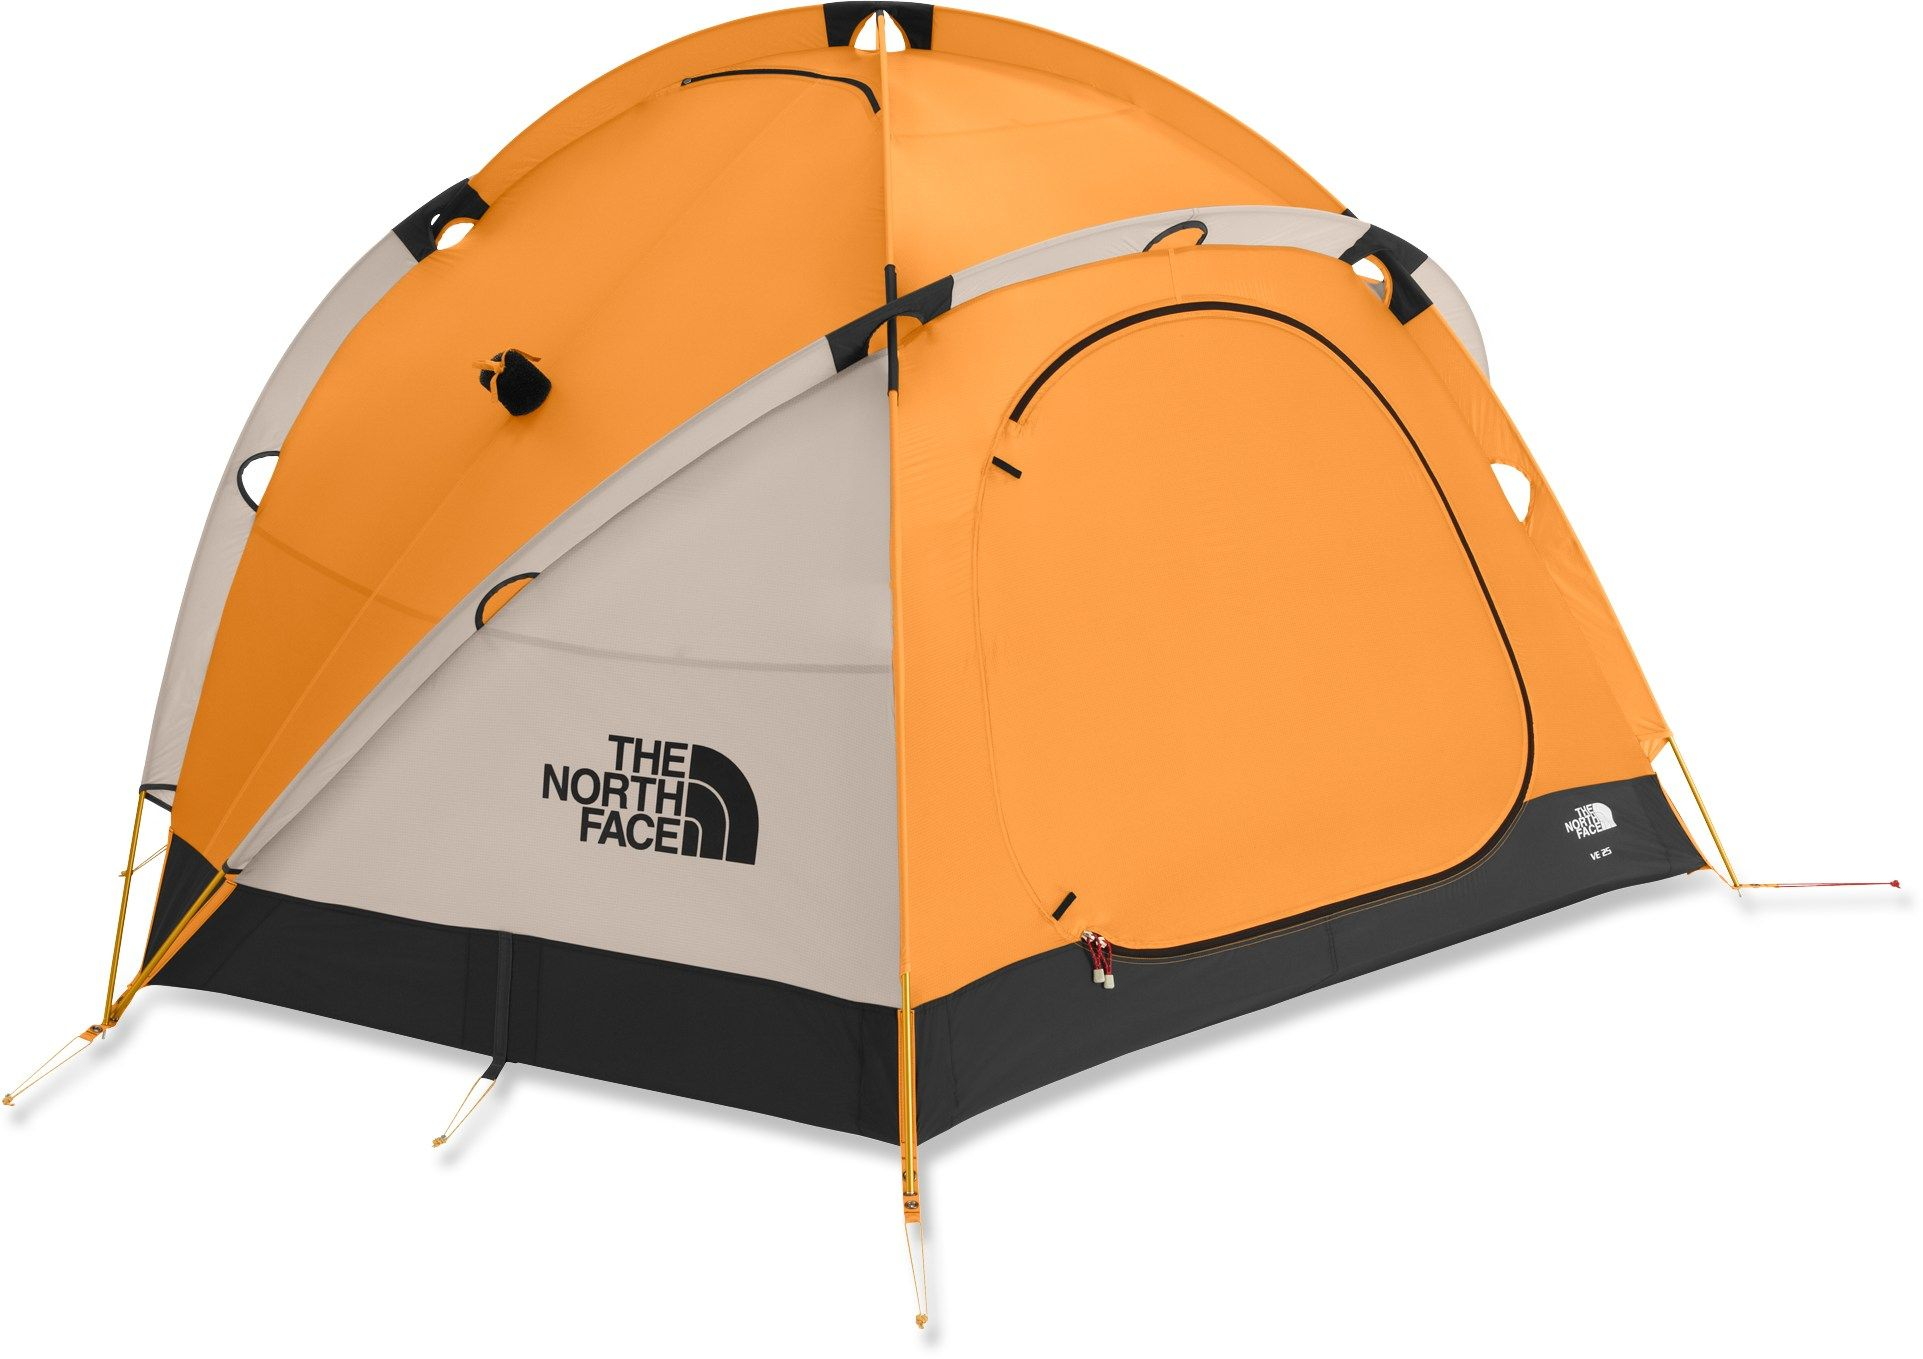 The North Face Equipment Tents Expedition VE 25  sc 1 st  Pinterest & The North Face VE-25 Tent - the best tent weu0027ve ever had and the ...